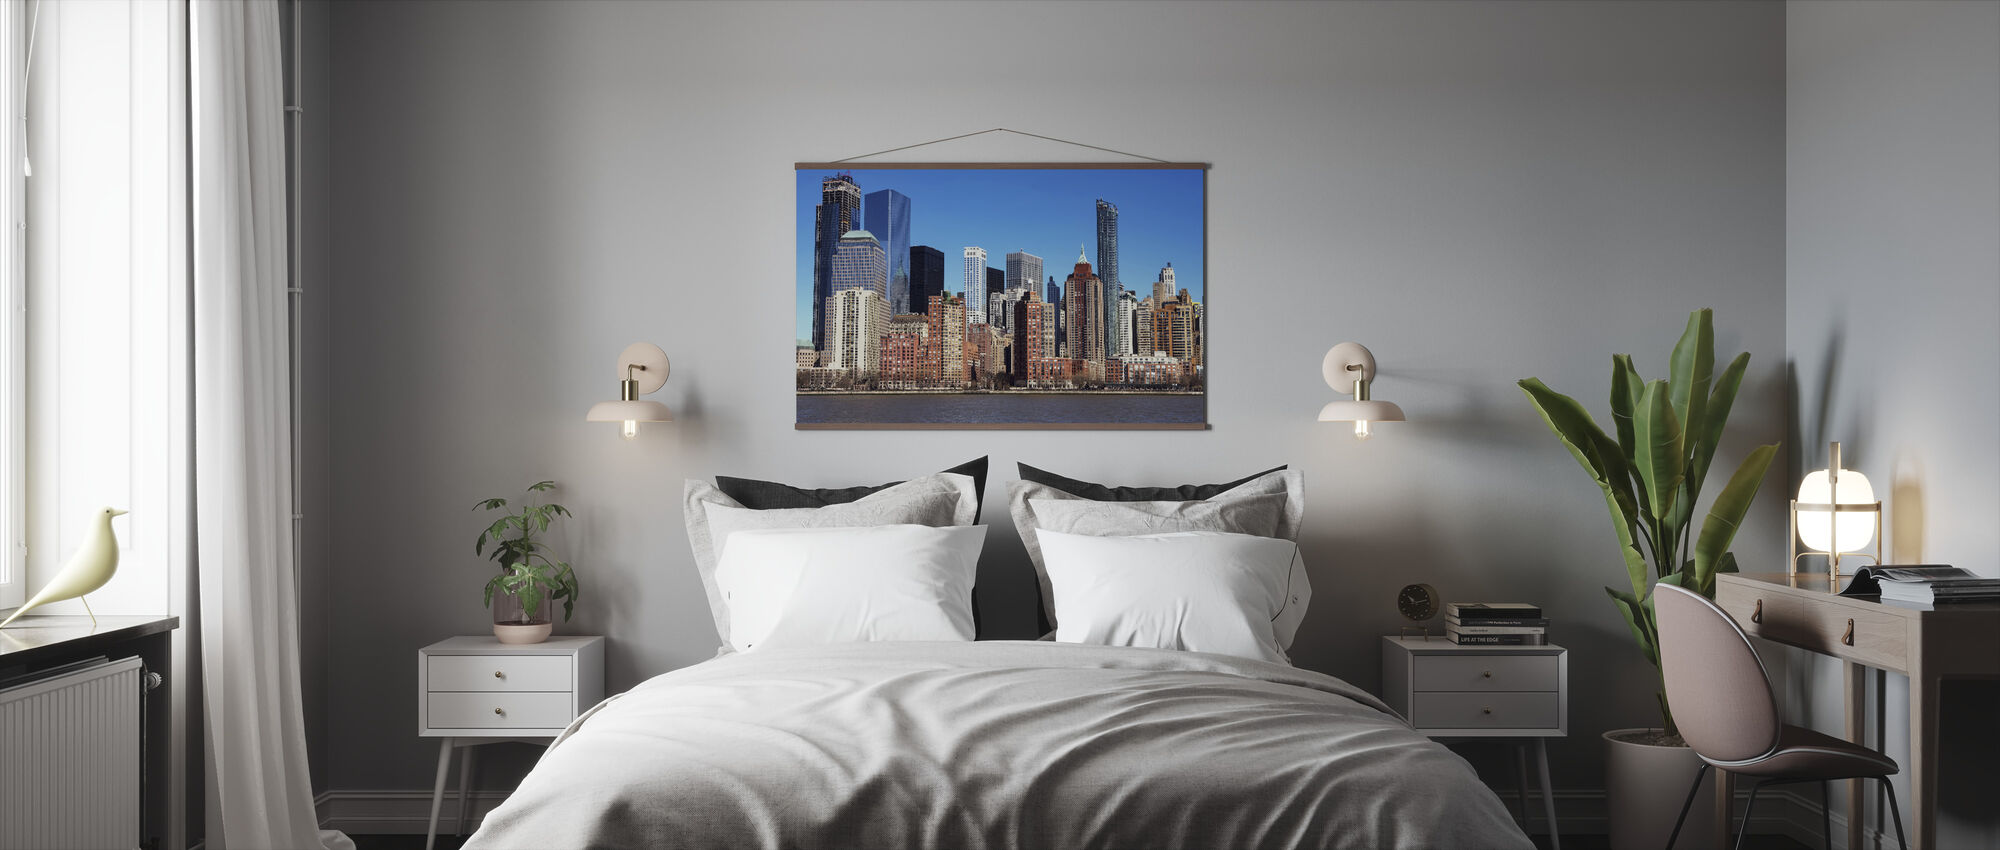 Manhattan Skyscraper - Poster - Bedroom